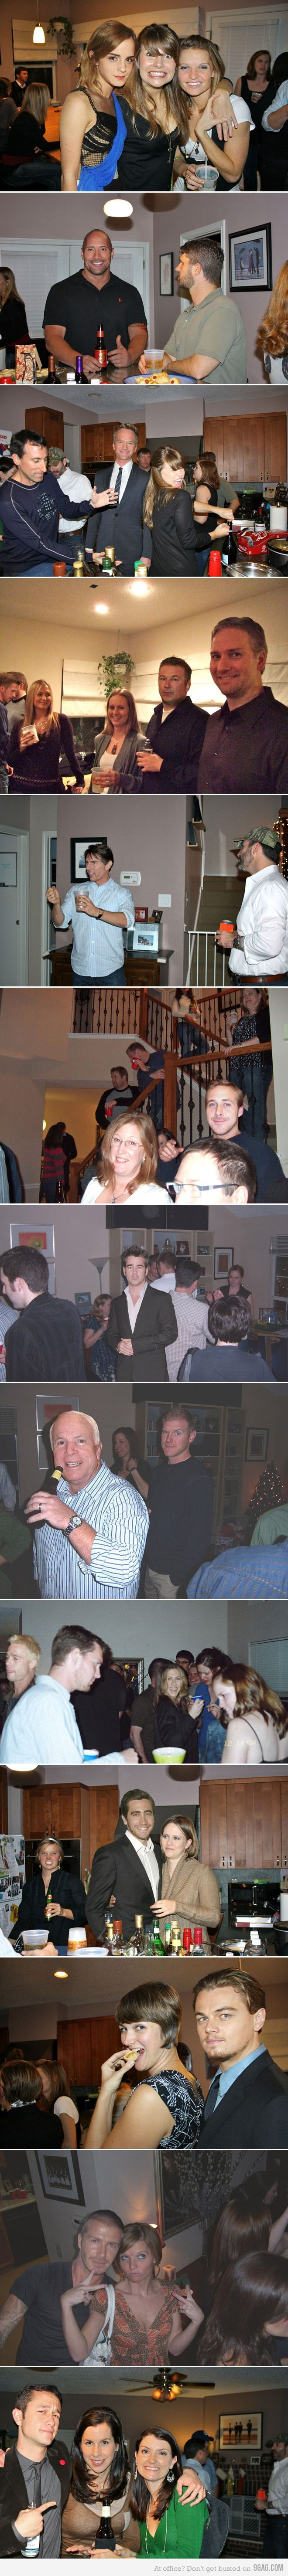 Facebook trolling. photoshop celebs into party pics. hilarity